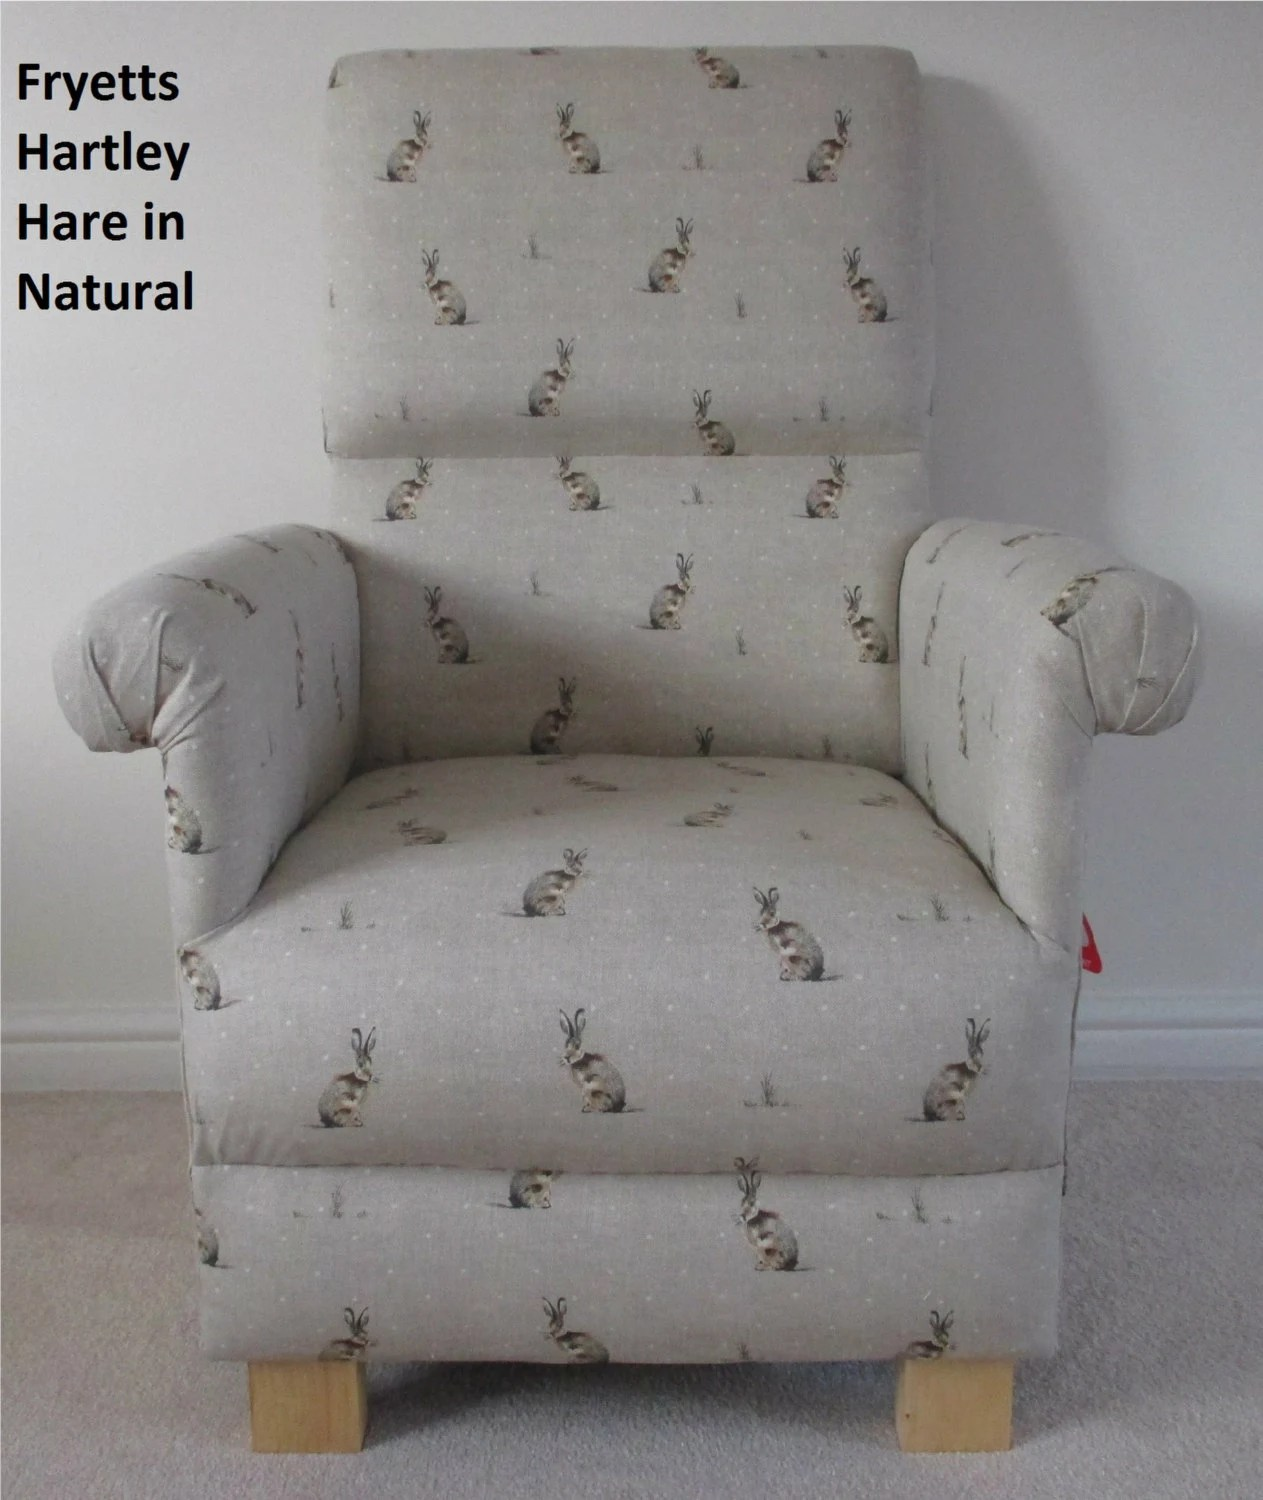 Wohnzimmermöbel Taupe Fryetts Hartley Hare Fabric Adult Chair Rabbits Armchair Bunnies Animals Natural Beige Or Duck Egg Nursery Bedroom